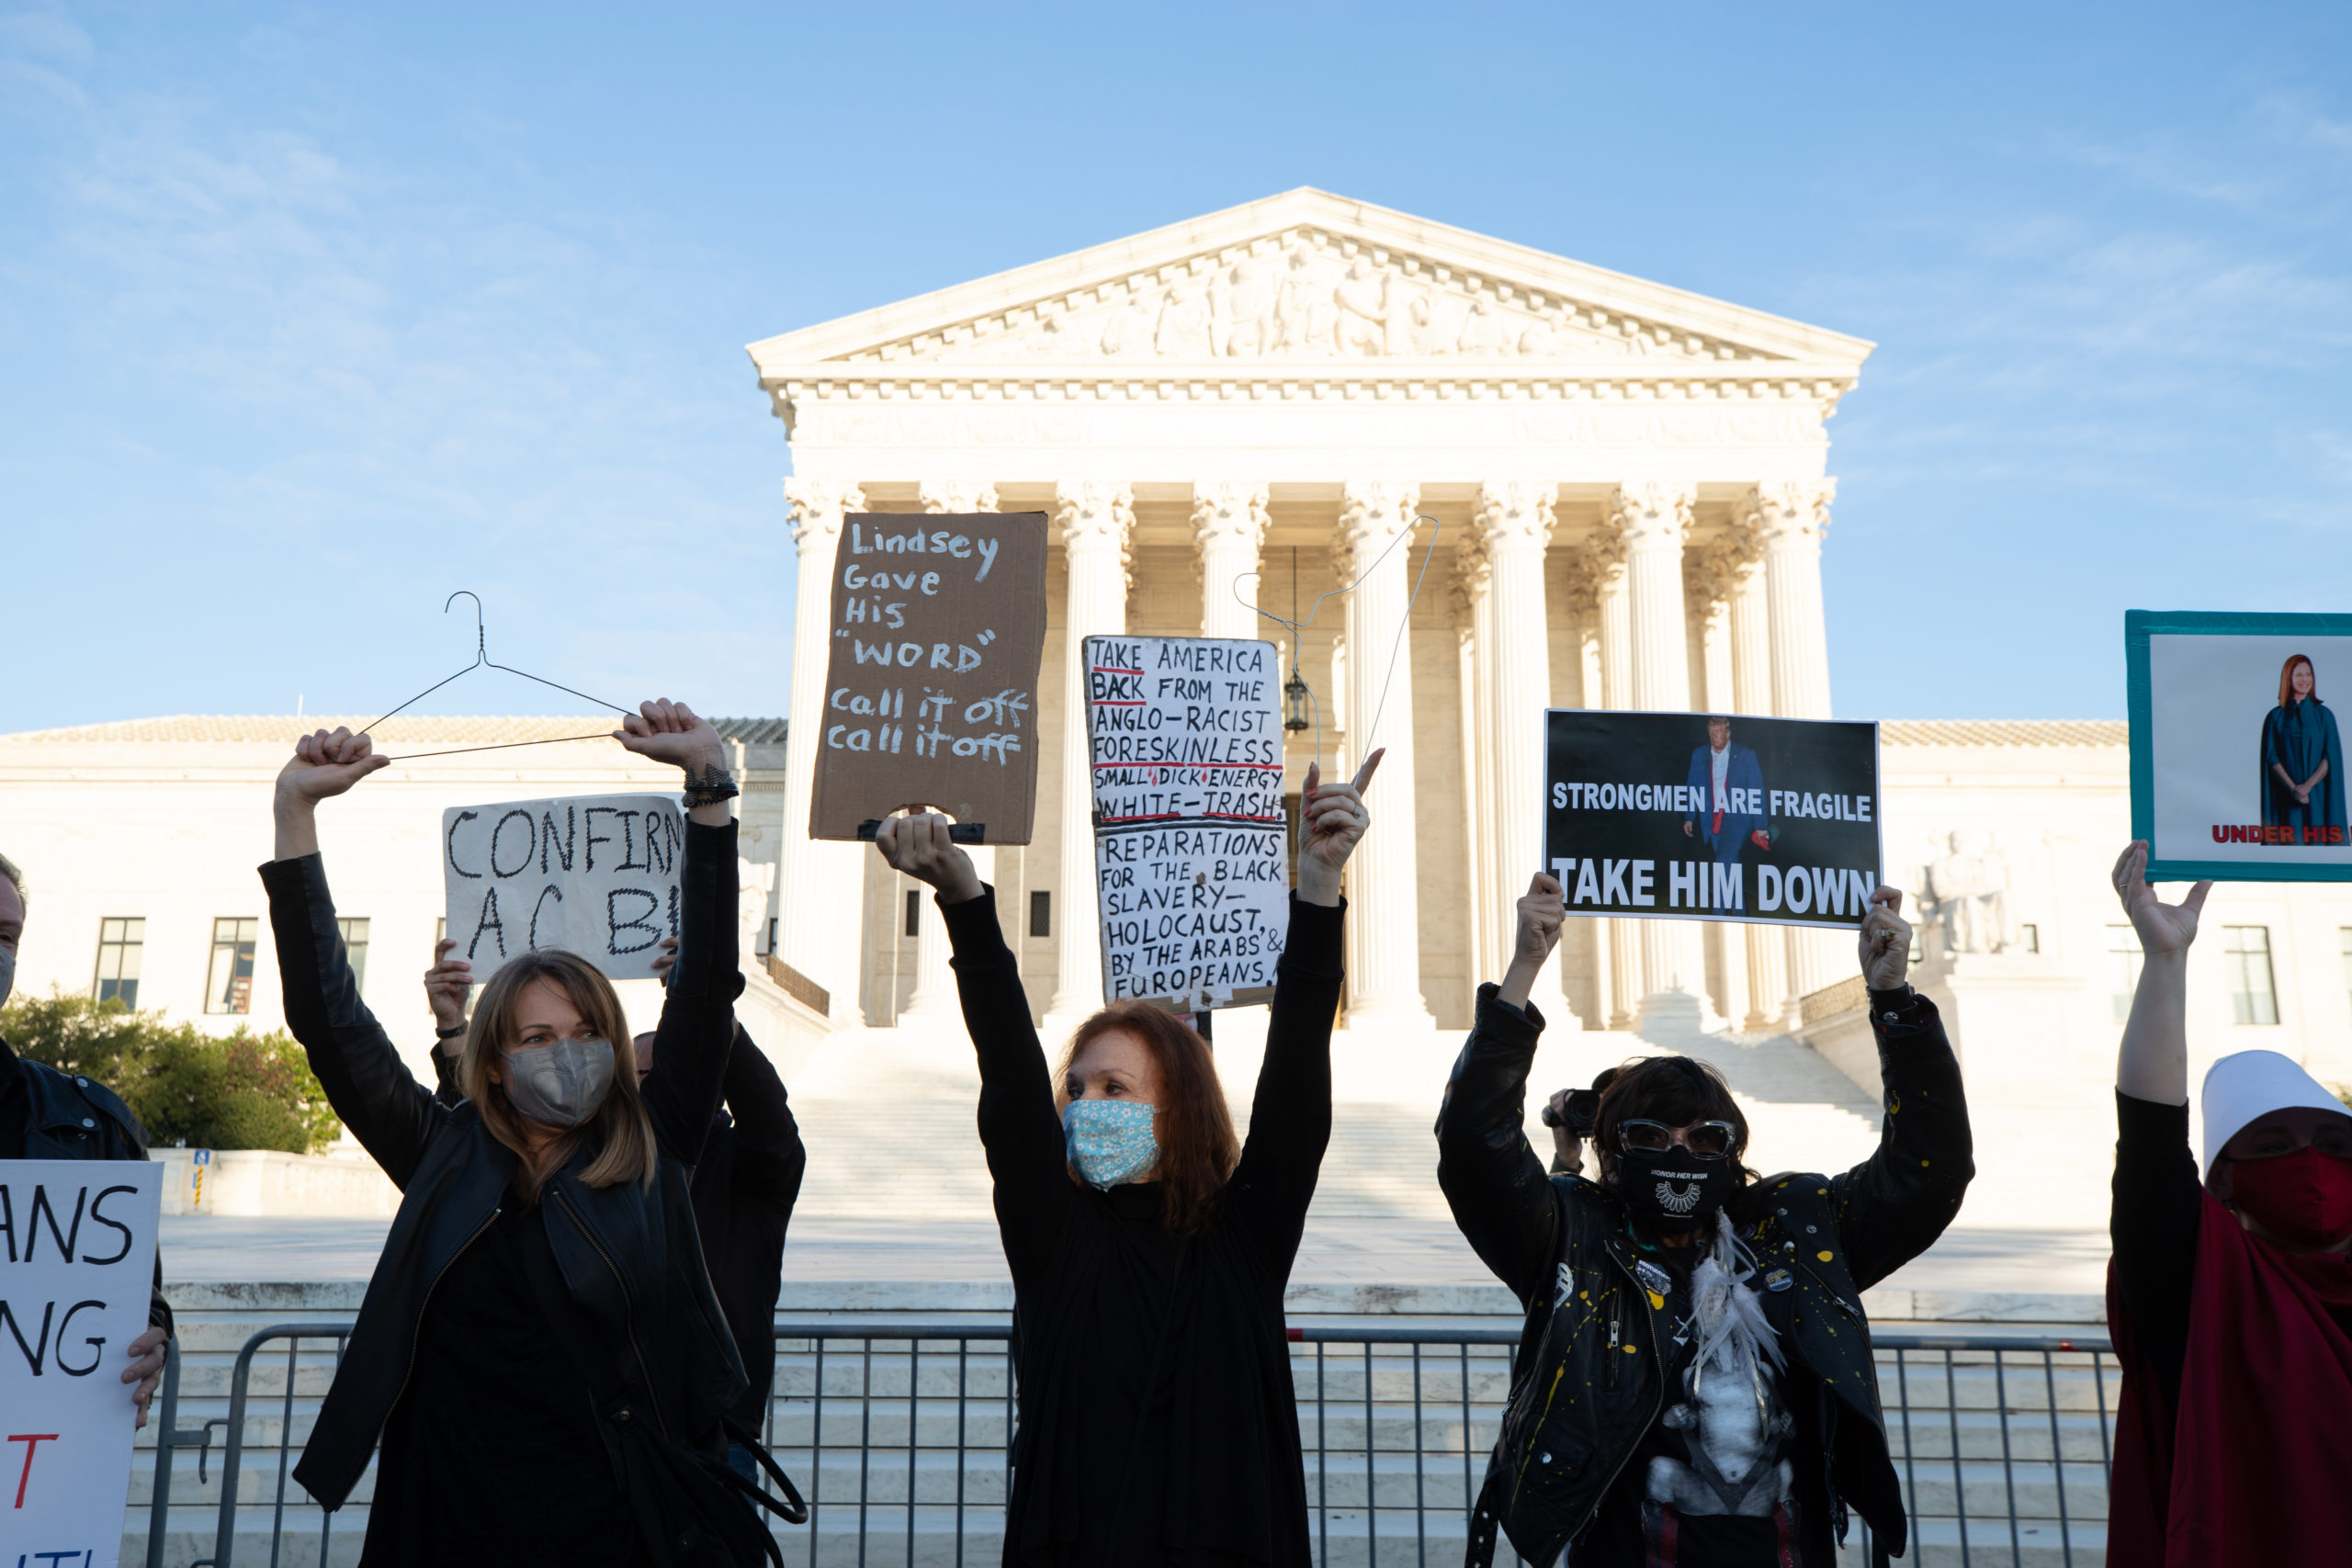 Anti-Amy Coney Barrett demonstrators at the Supreme Court in Washington, D.C. ahead of the Senate vote to confirm Barrett on October 26, 2020. (Kaylee Greenlee - Daily Caller News Foundation)